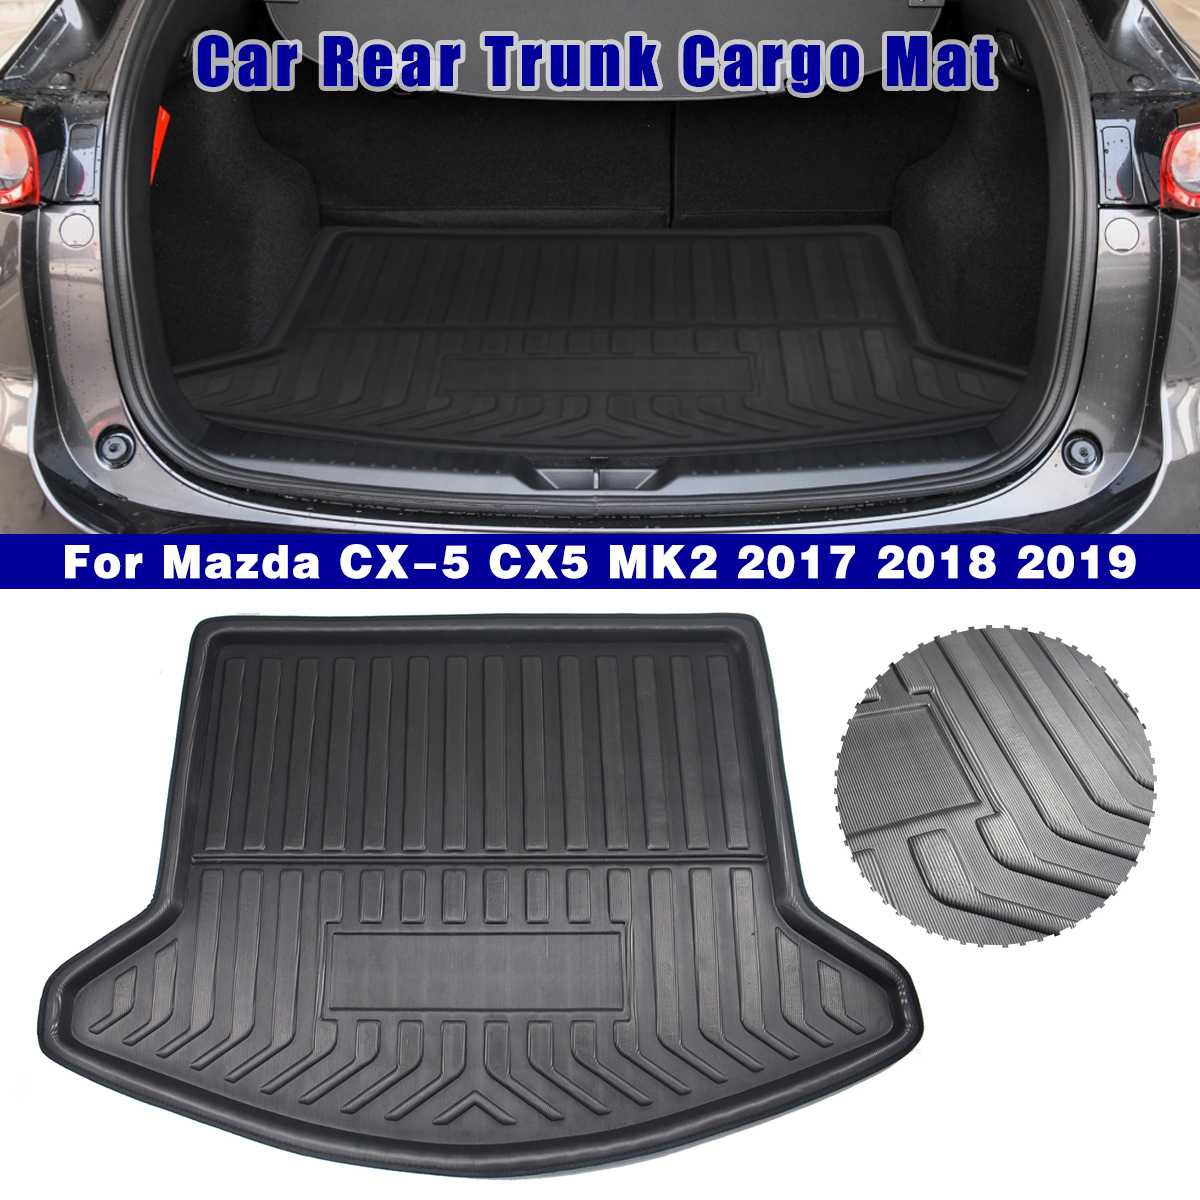 Cargo Liner Boot Tray Rear Trunk Cover Matt Mat Floor Carpet Kick Pad Mud Non-slip For Mazda CX-5 CX5 MK2 2017 2018 2019 2nd